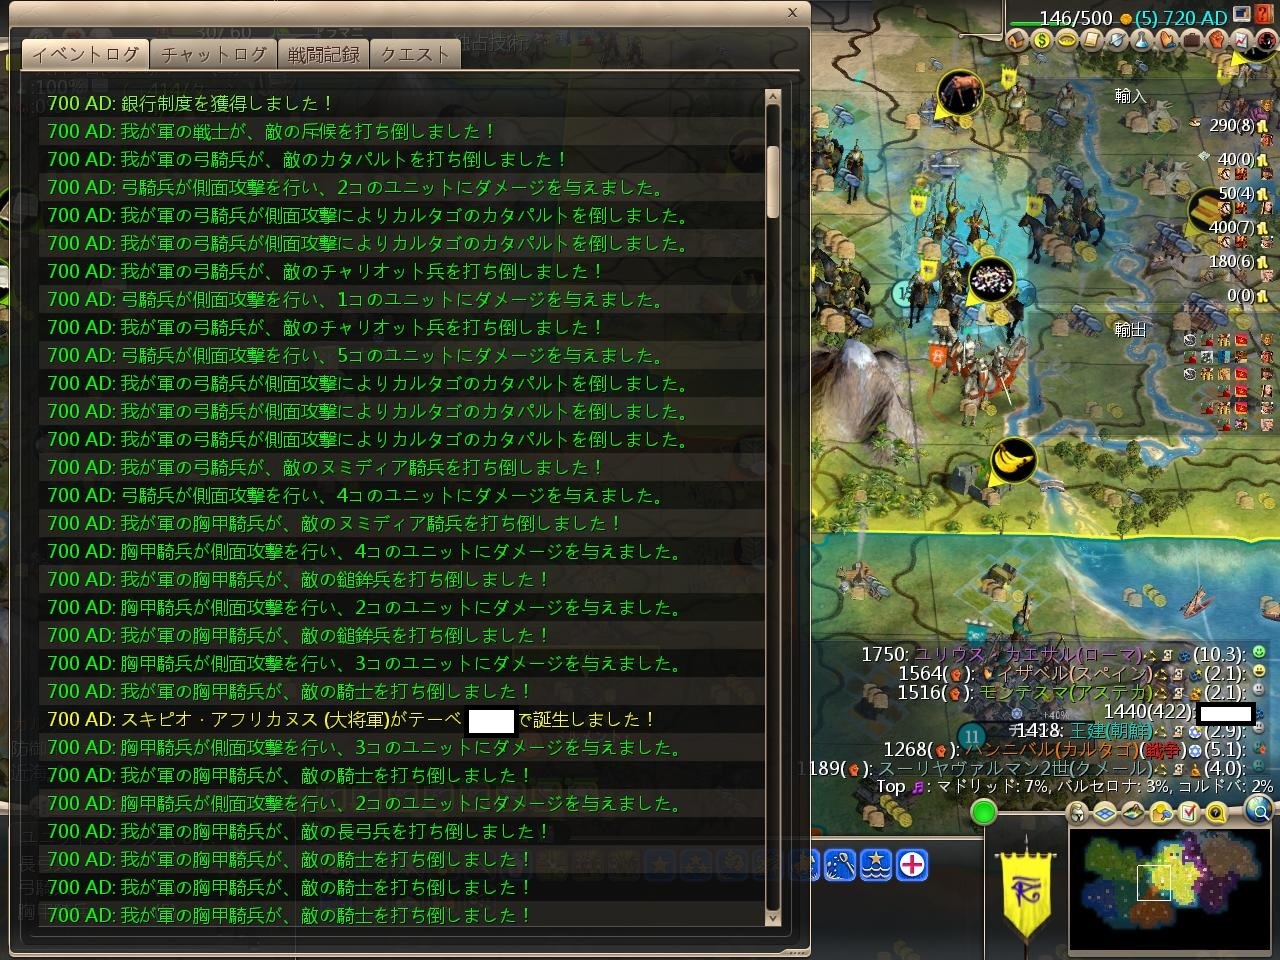 Civ4ScreenShot2143.JPG